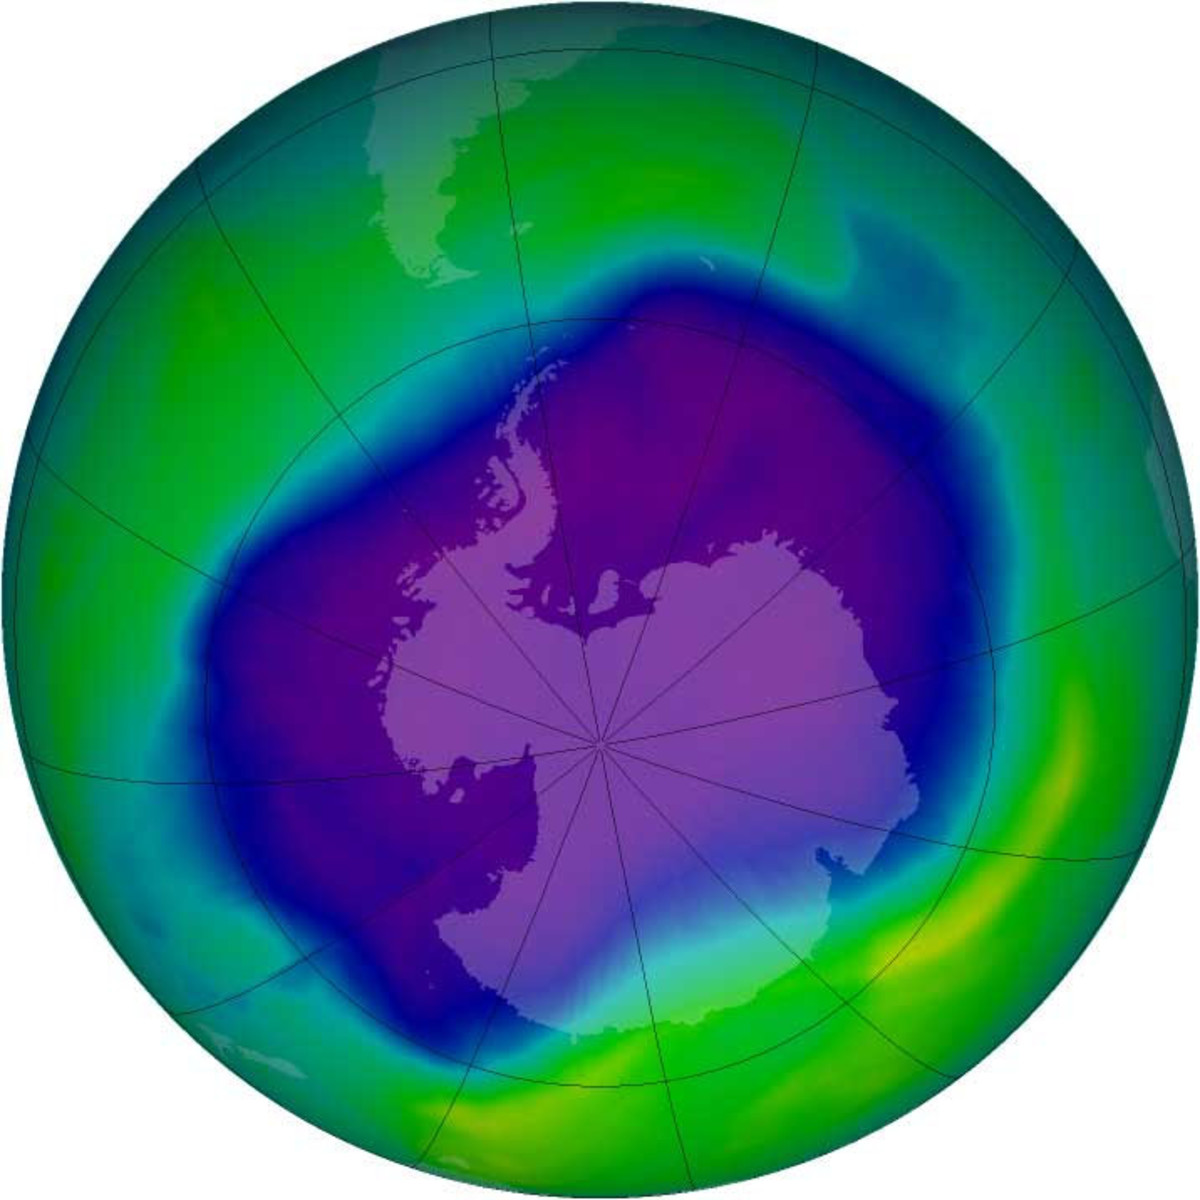 Ozone hole over the South Pole